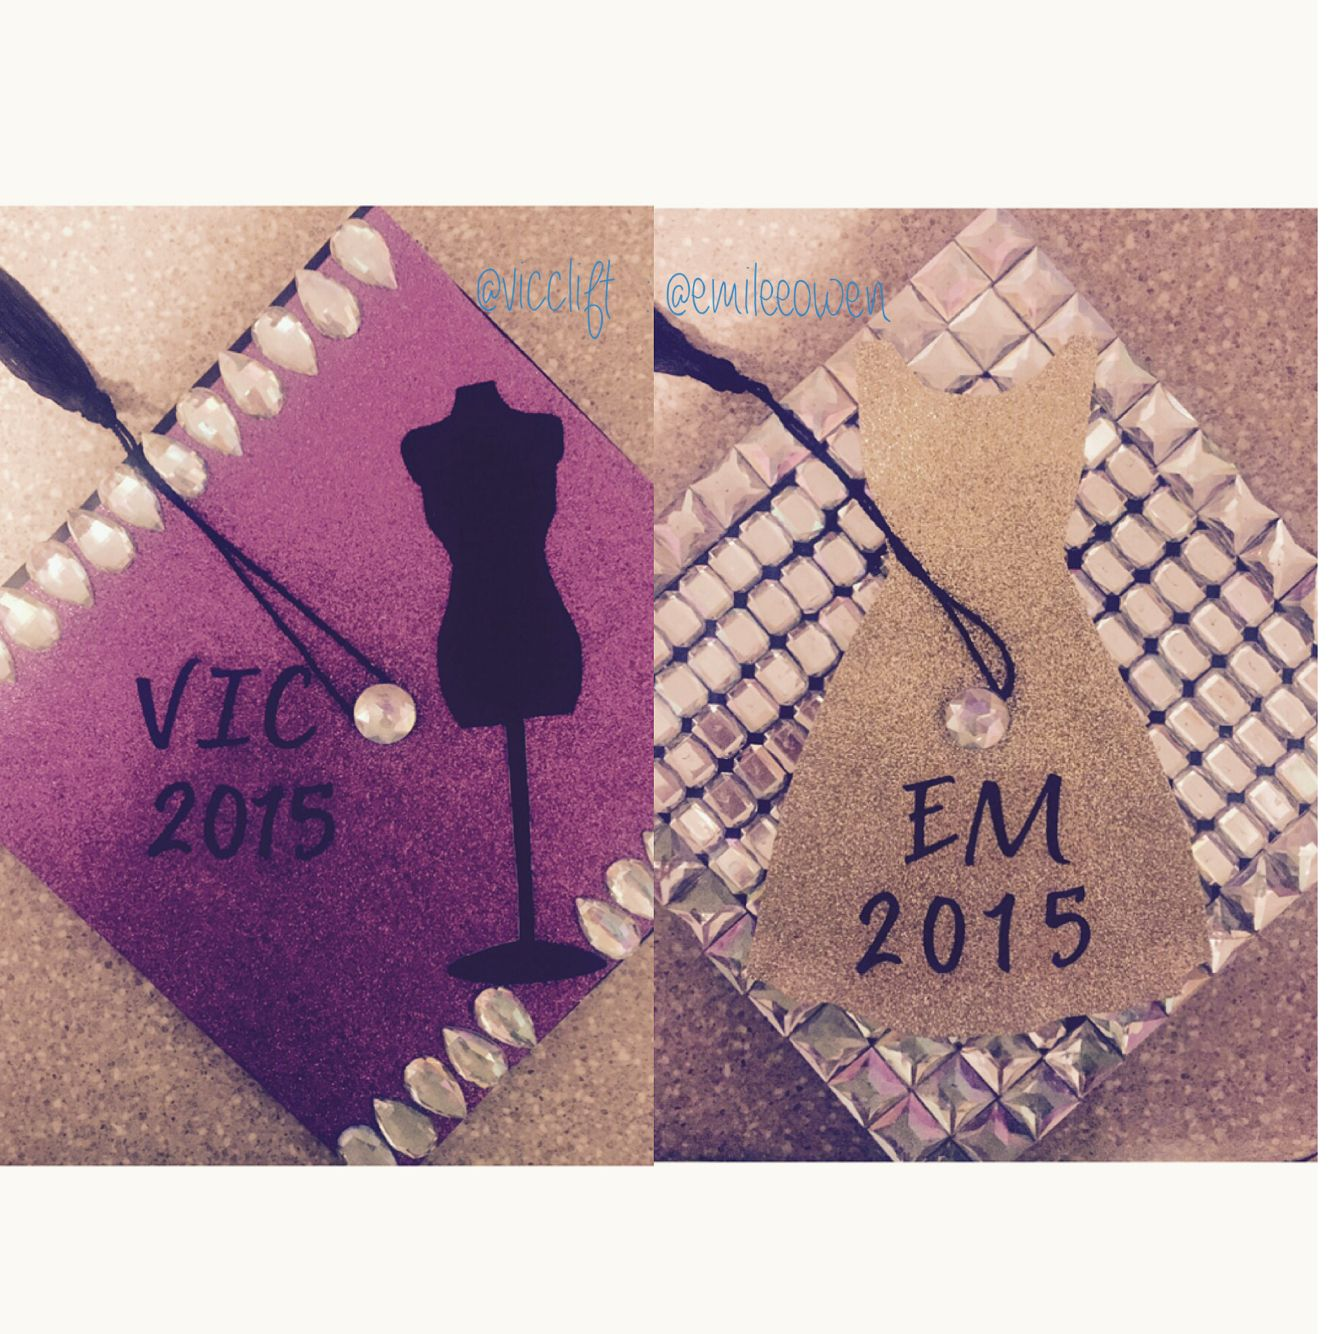 Graduation cap for fashion majors! | Things to DIY... but probs ...